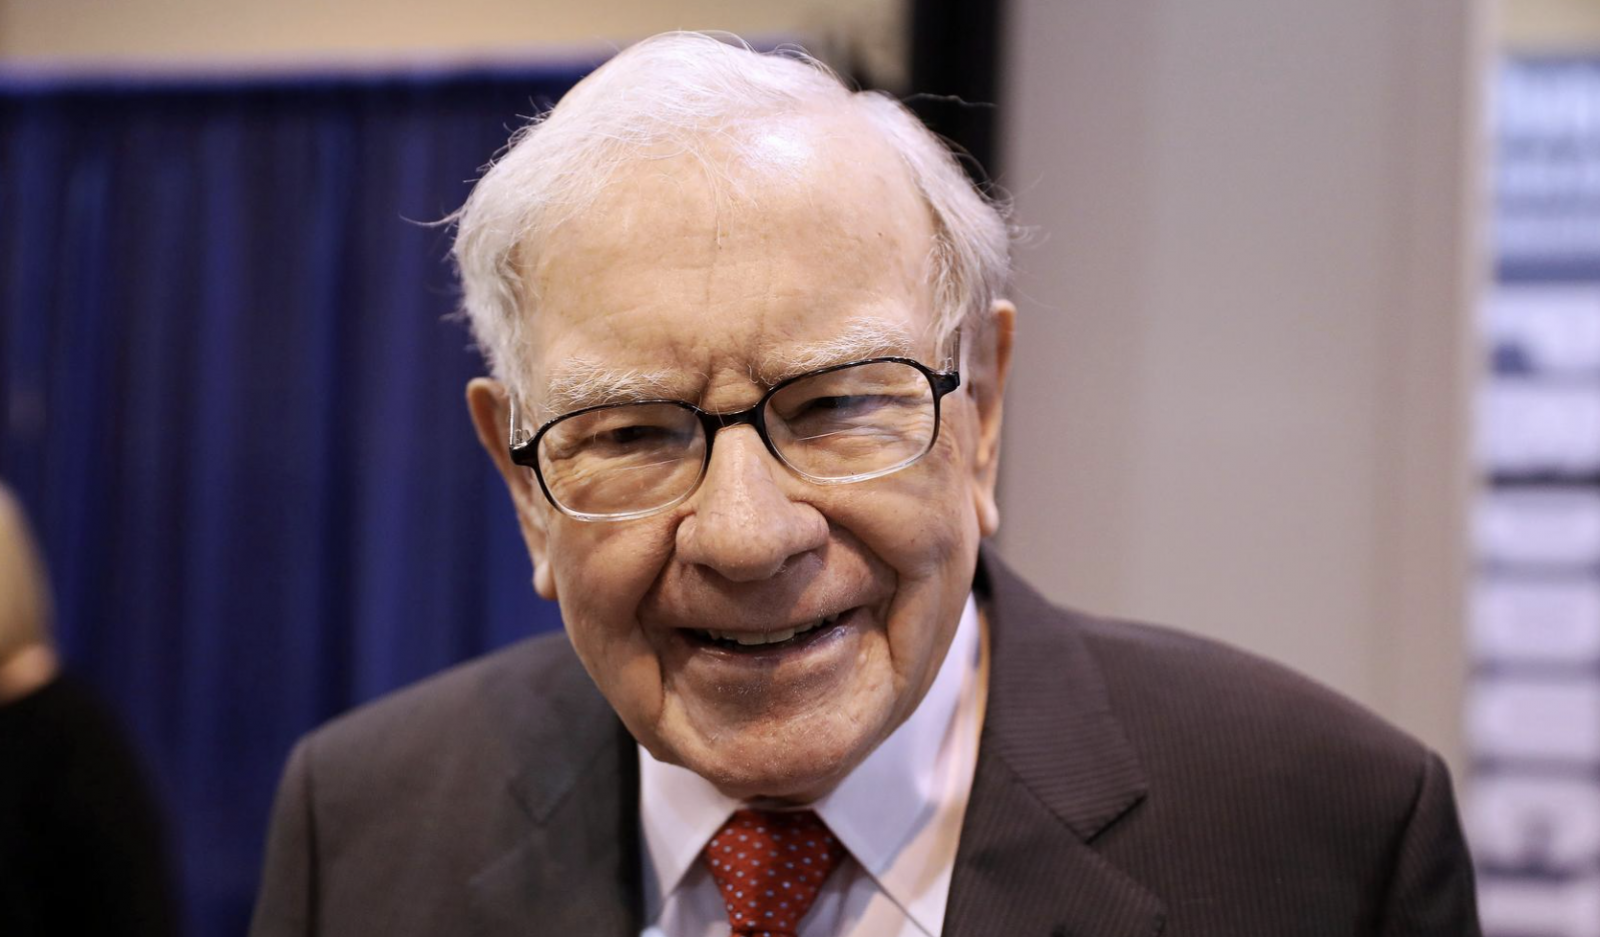 Buffett upbeat on U.S. and Berkshire, buys back stock even as pandemic hits results